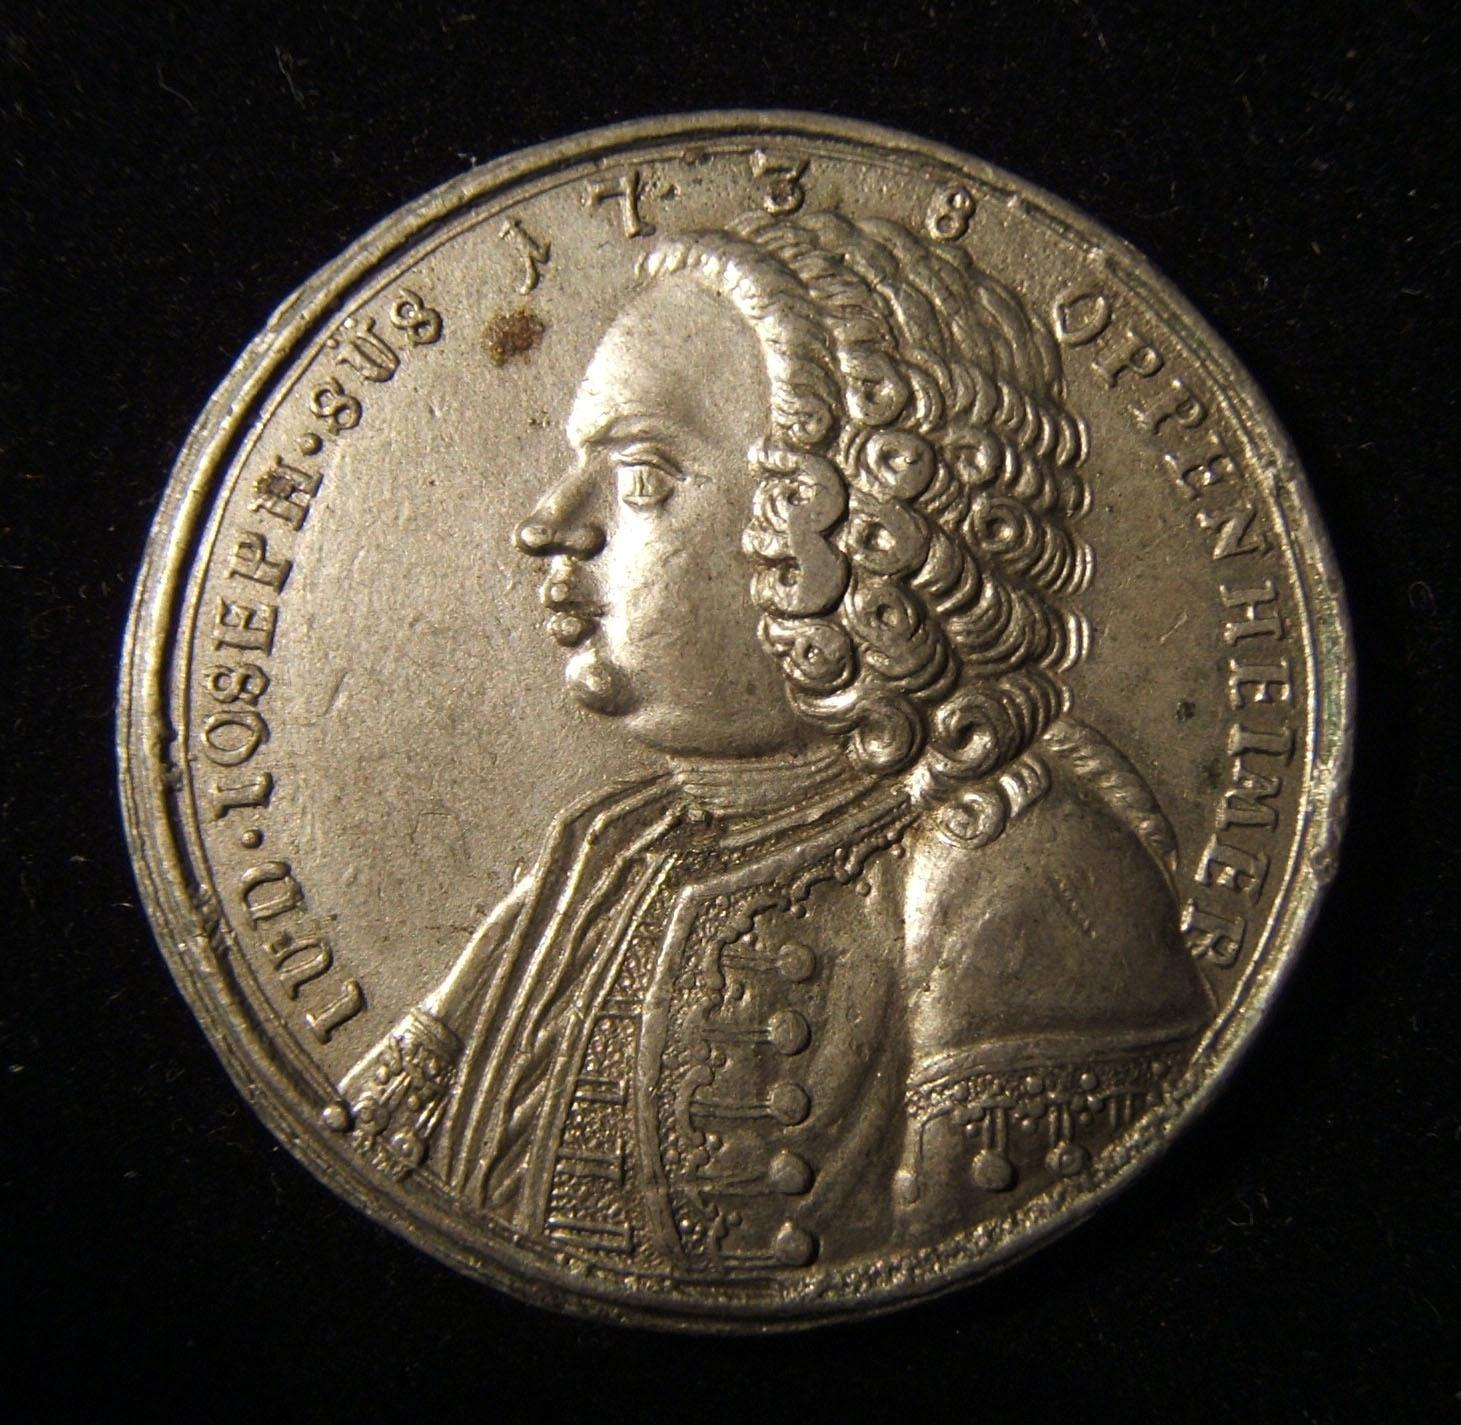 Germany: Jud Süss in Birdhouse white metal/pewter medal, 1738